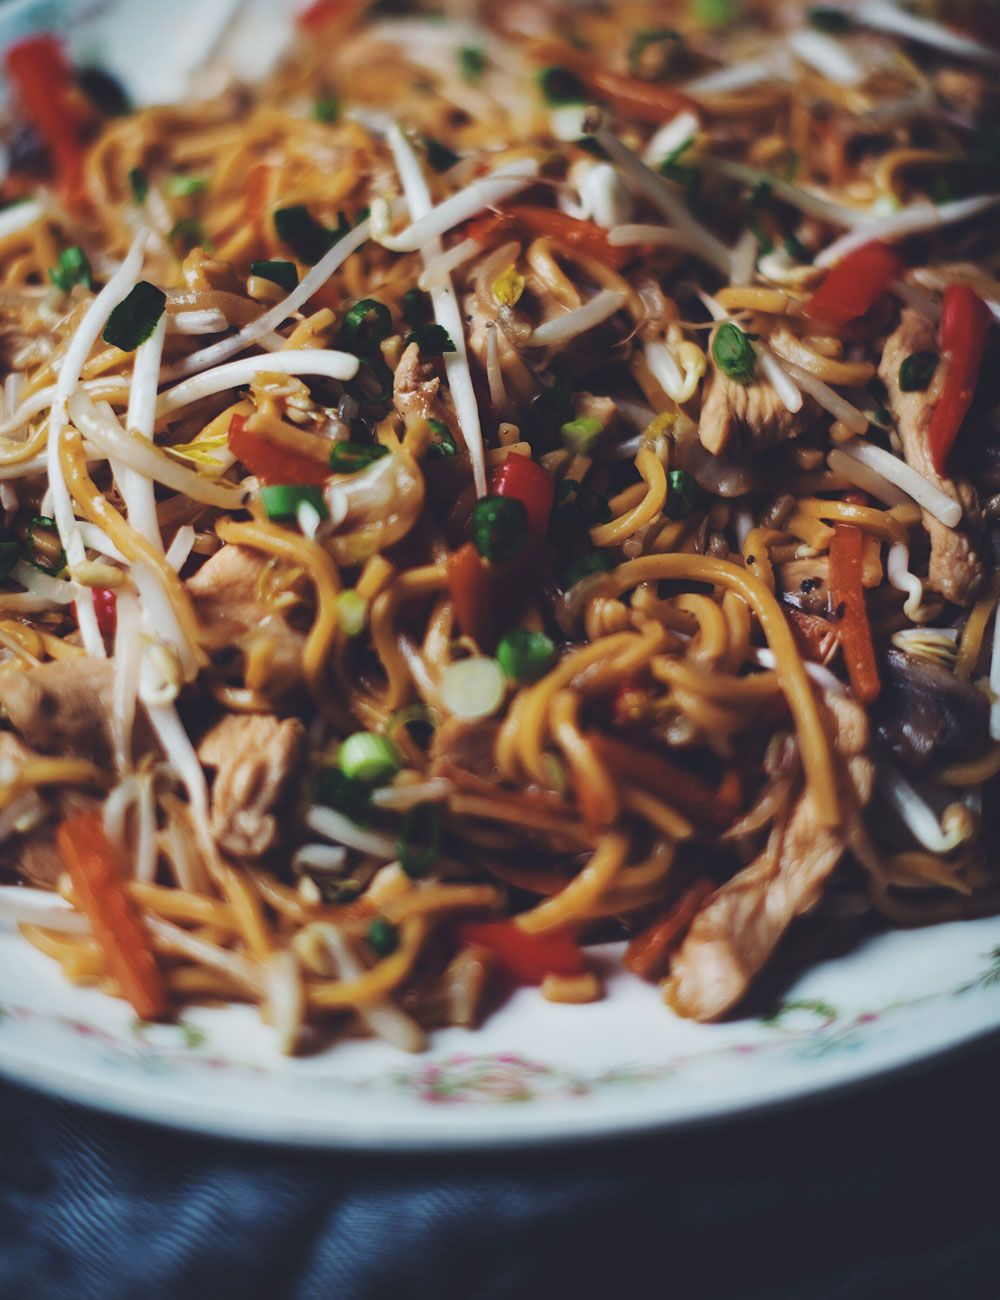 Chow Mein Au Poulet Le Coup De Grâce Recipe Chow Mein Easy Family Dinners Pasta Dishes